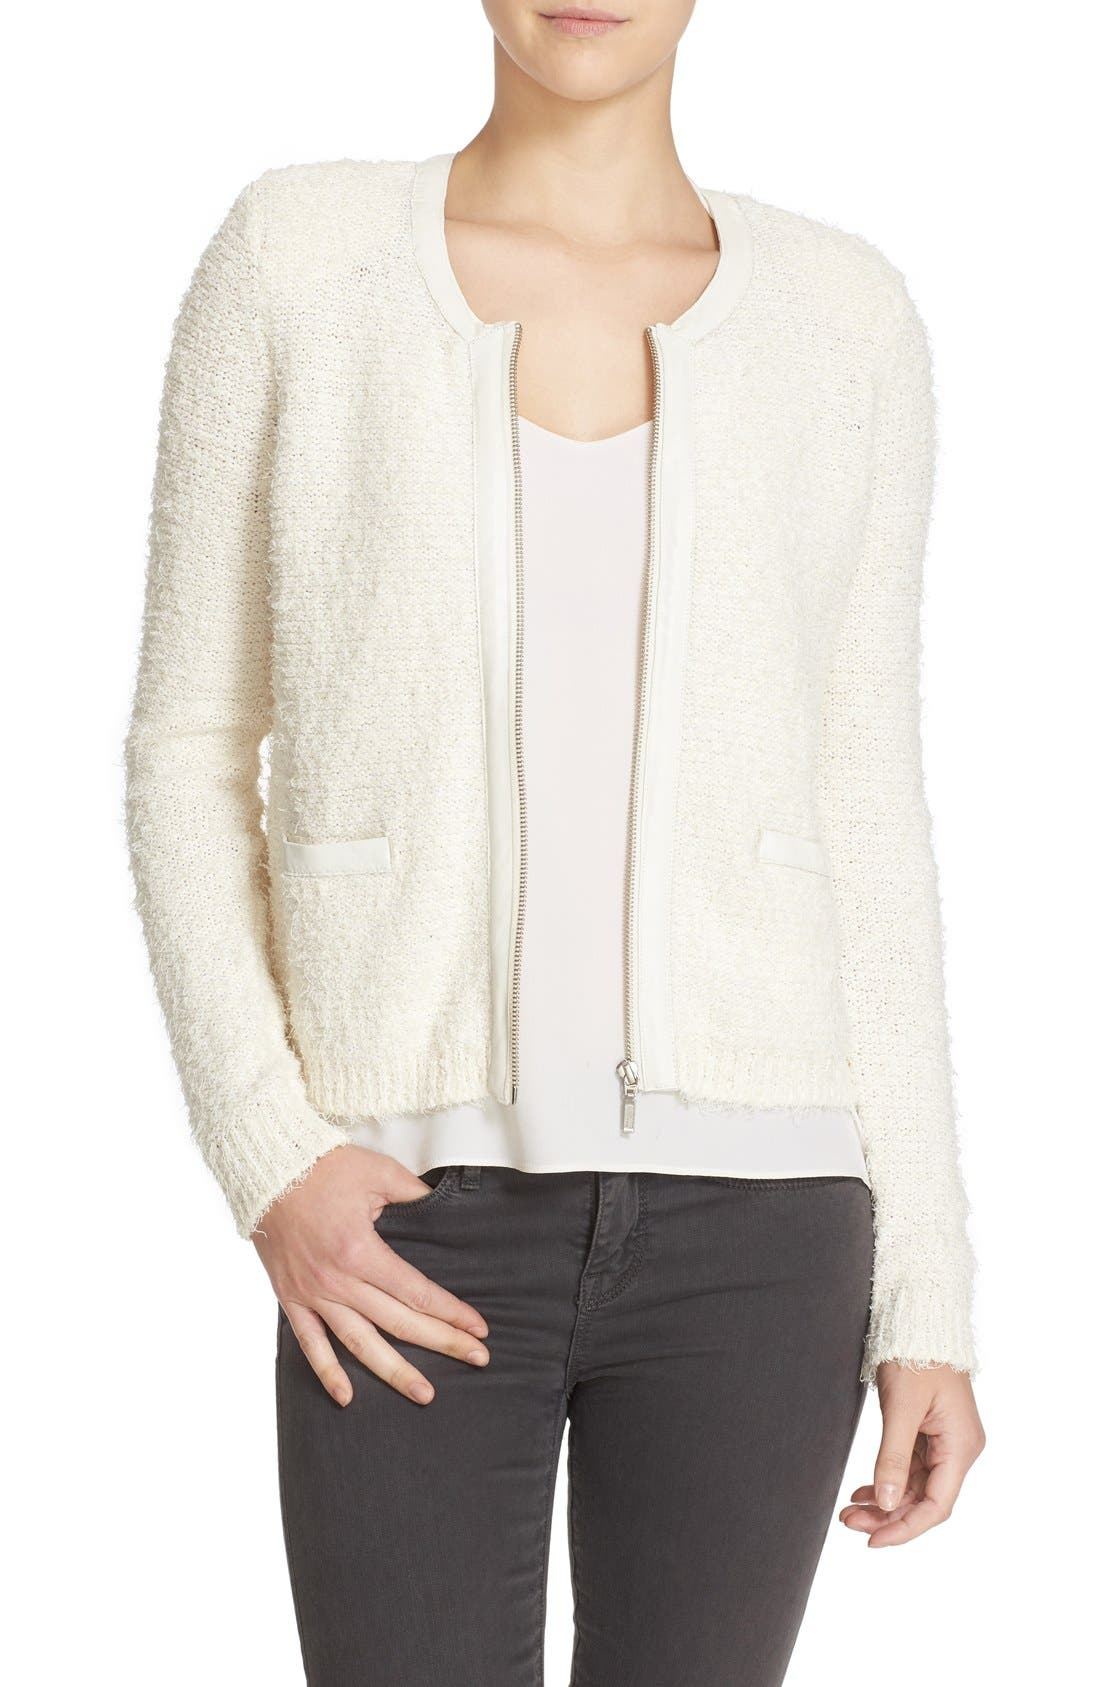 Alternate Image 1 Selected - Joie 'Jacolyn B' Leather Trim Cardigan